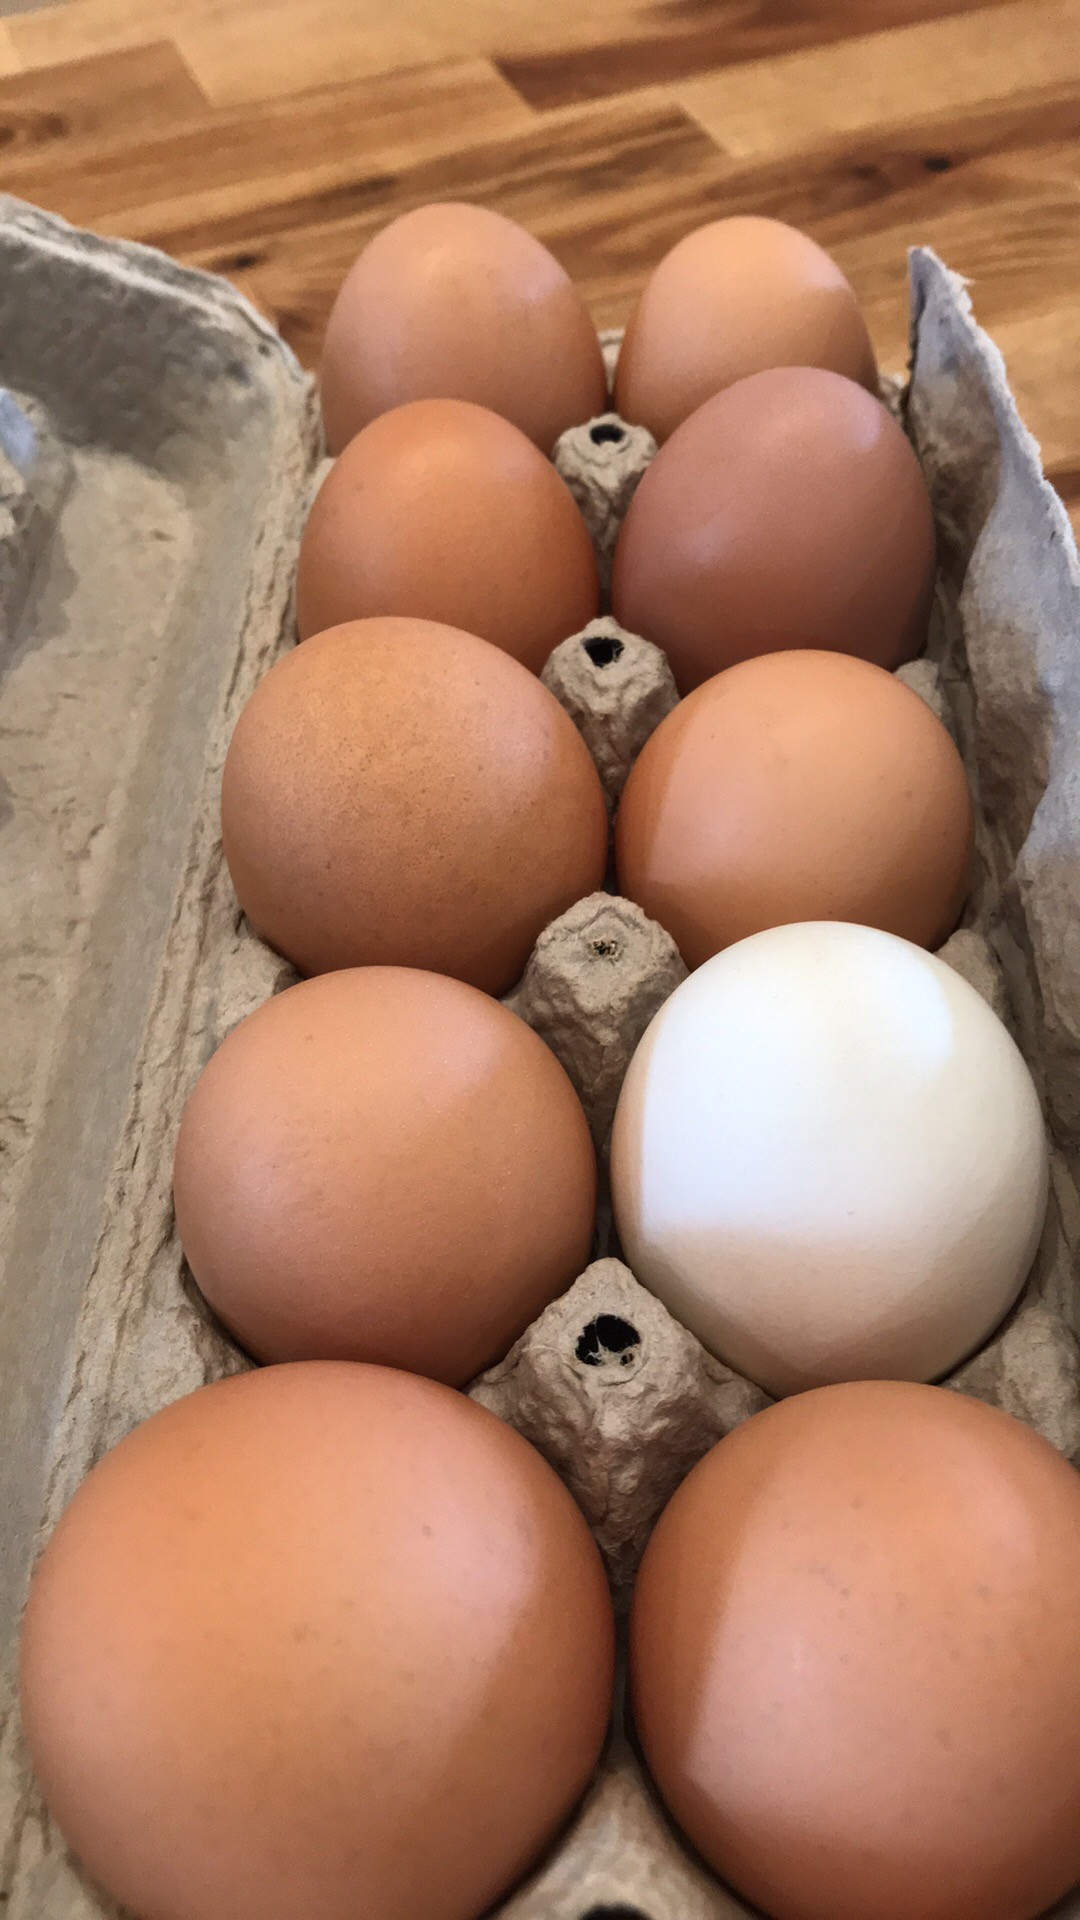 Dozen Large - jumbo Eggs